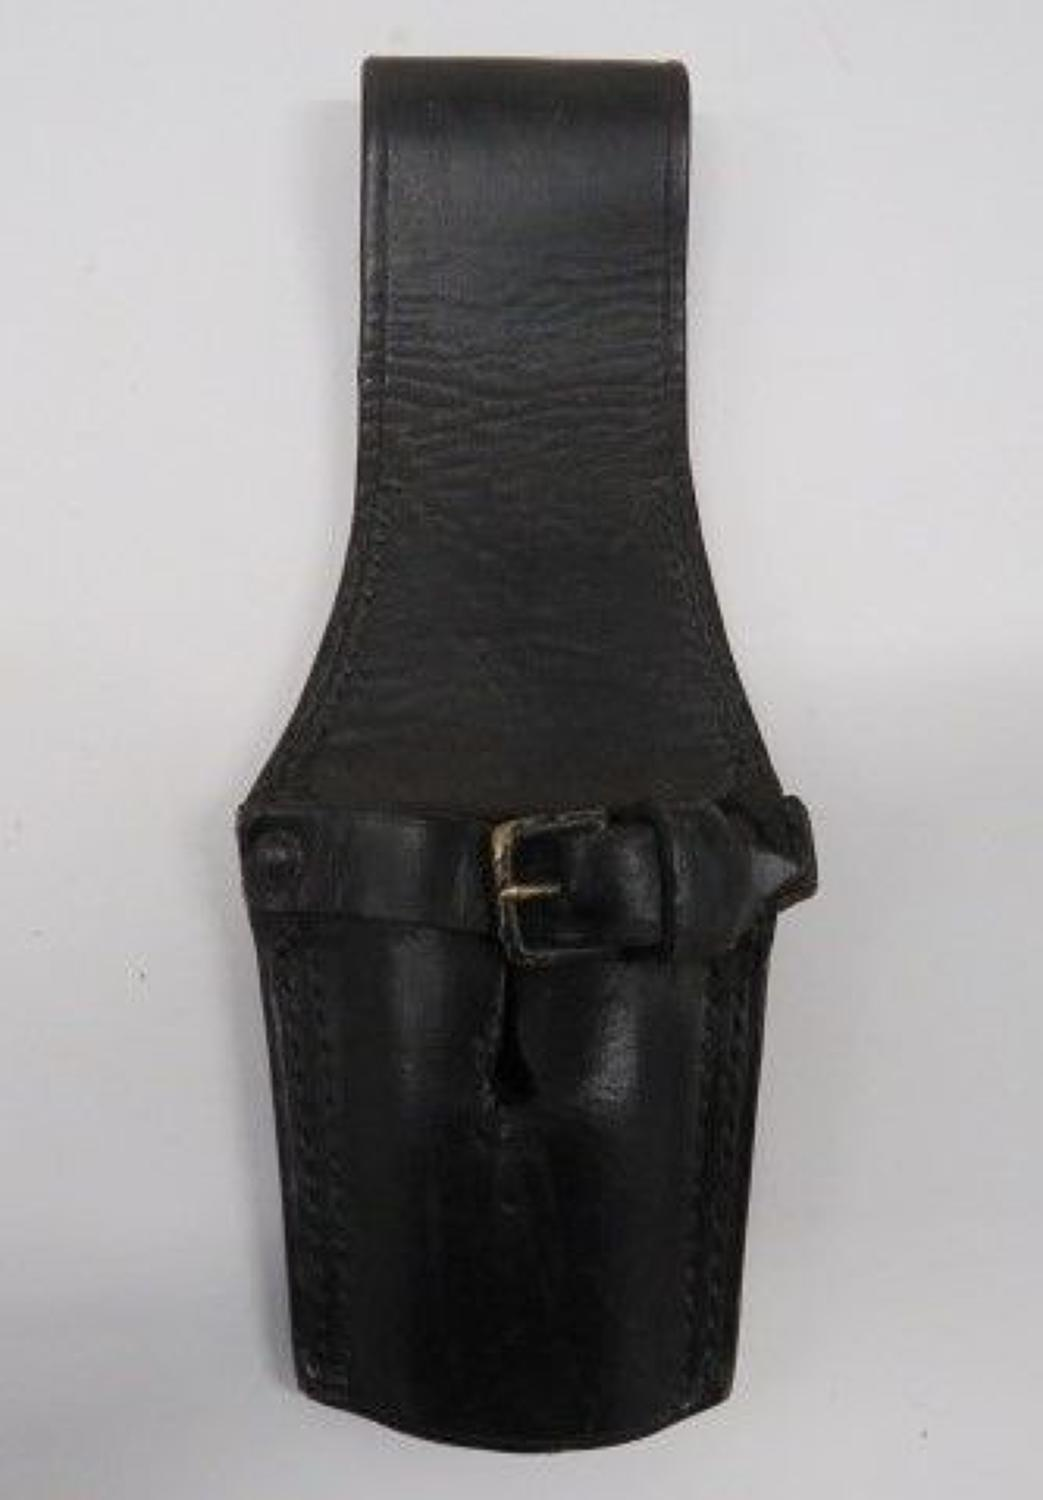 Victorian Black Leather Bayonet Frog